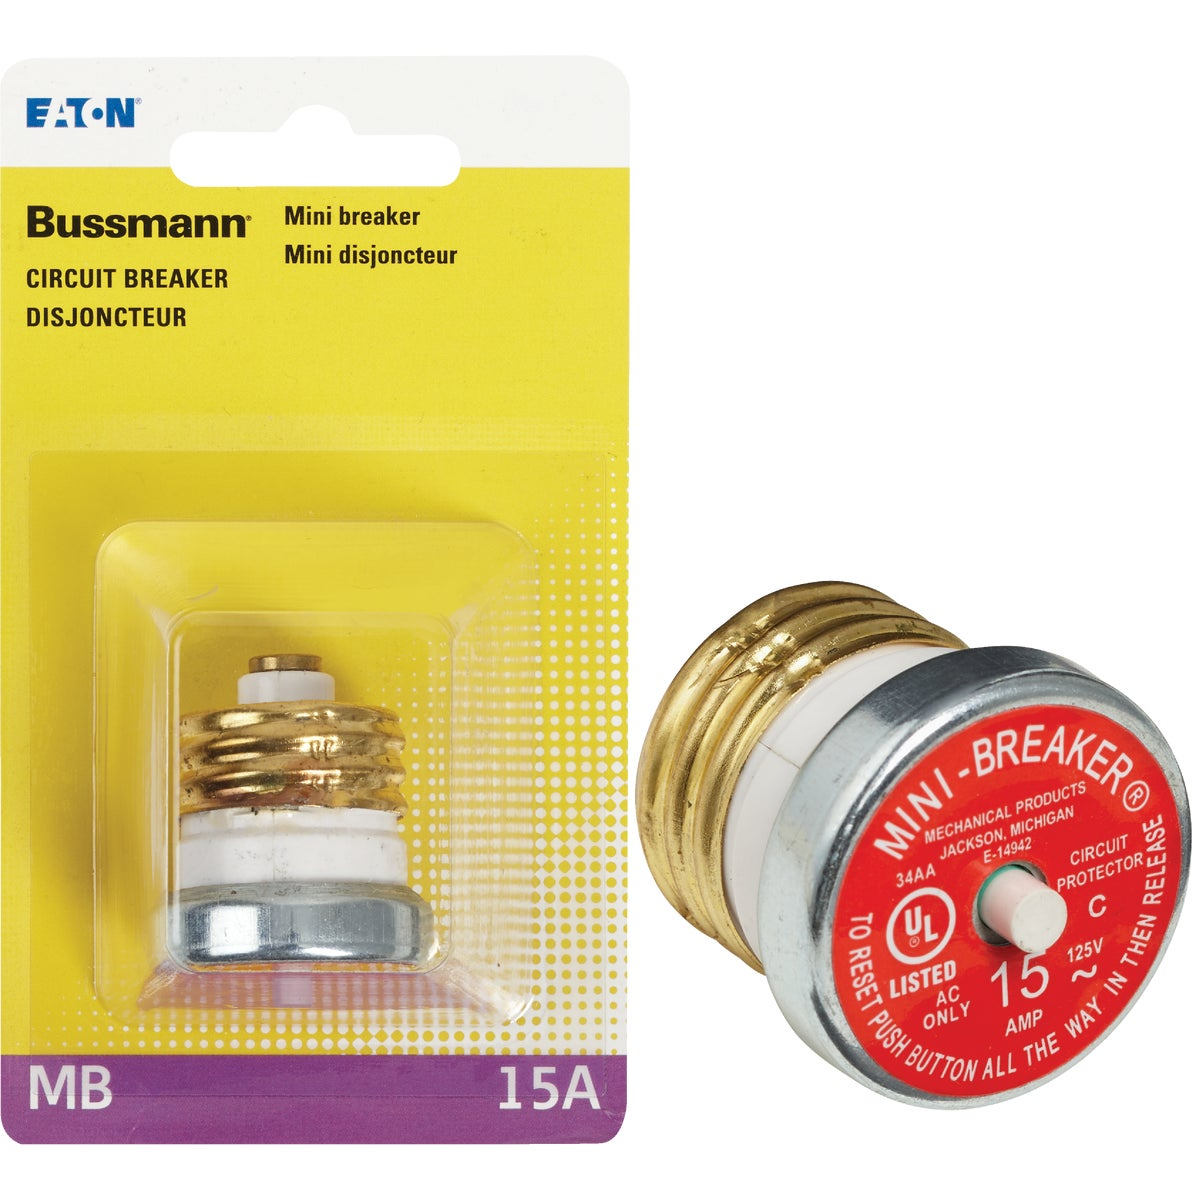 15A MINI BREAKER - BP/MB-15 by Bussmann Cooper